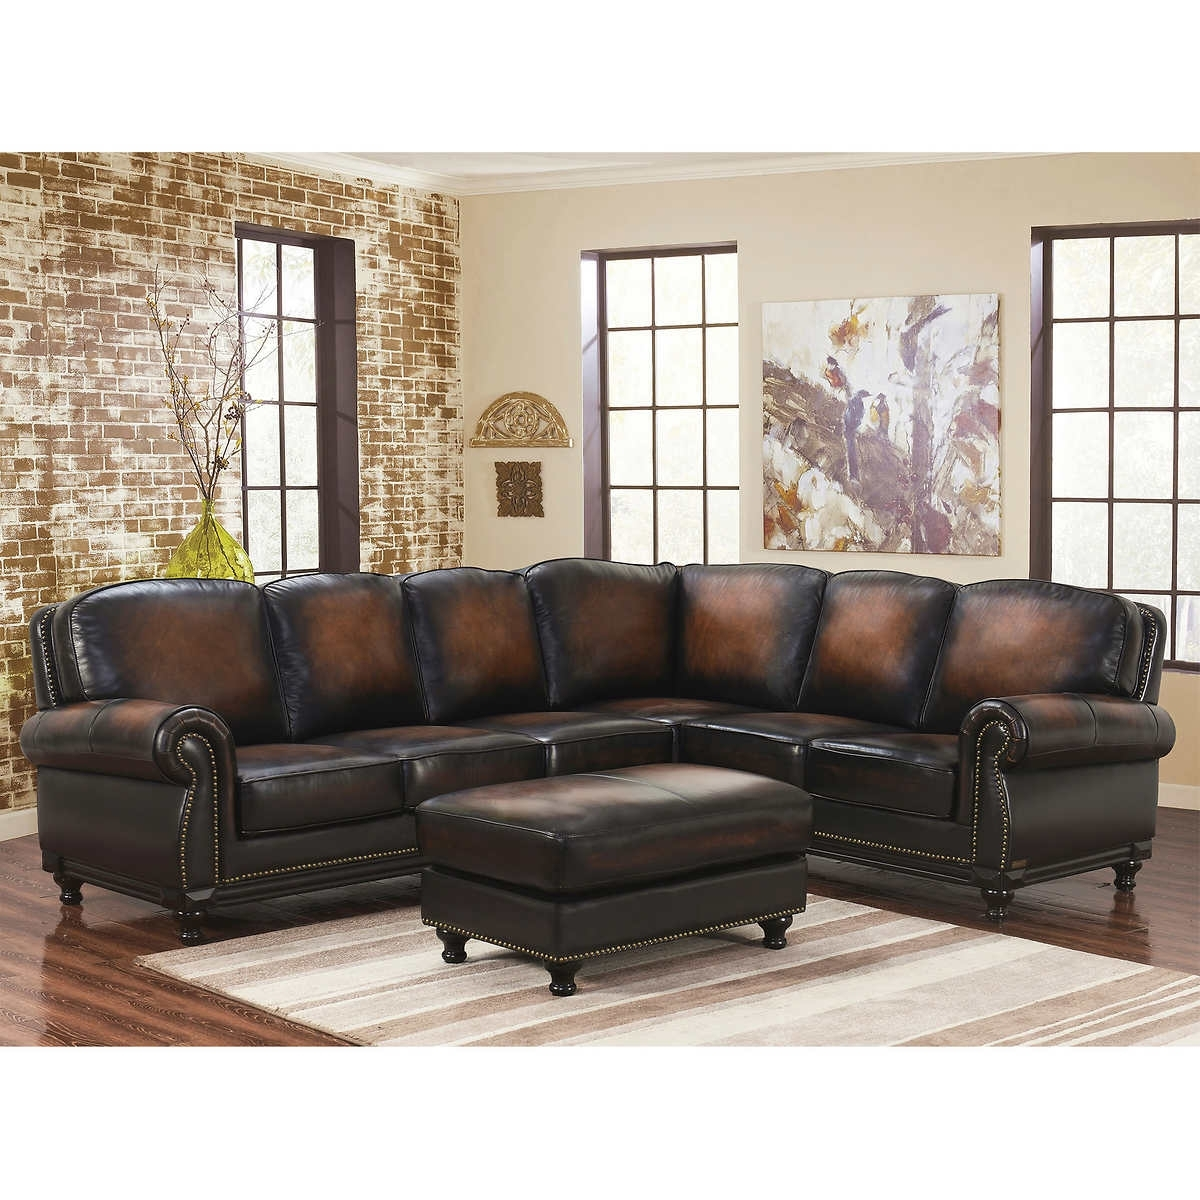 Inspirational Leather Sectional Sofa With Recliner 36 For Sofas And Regarding Sectional Sofas With Recliners Leather (Image 6 of 10)